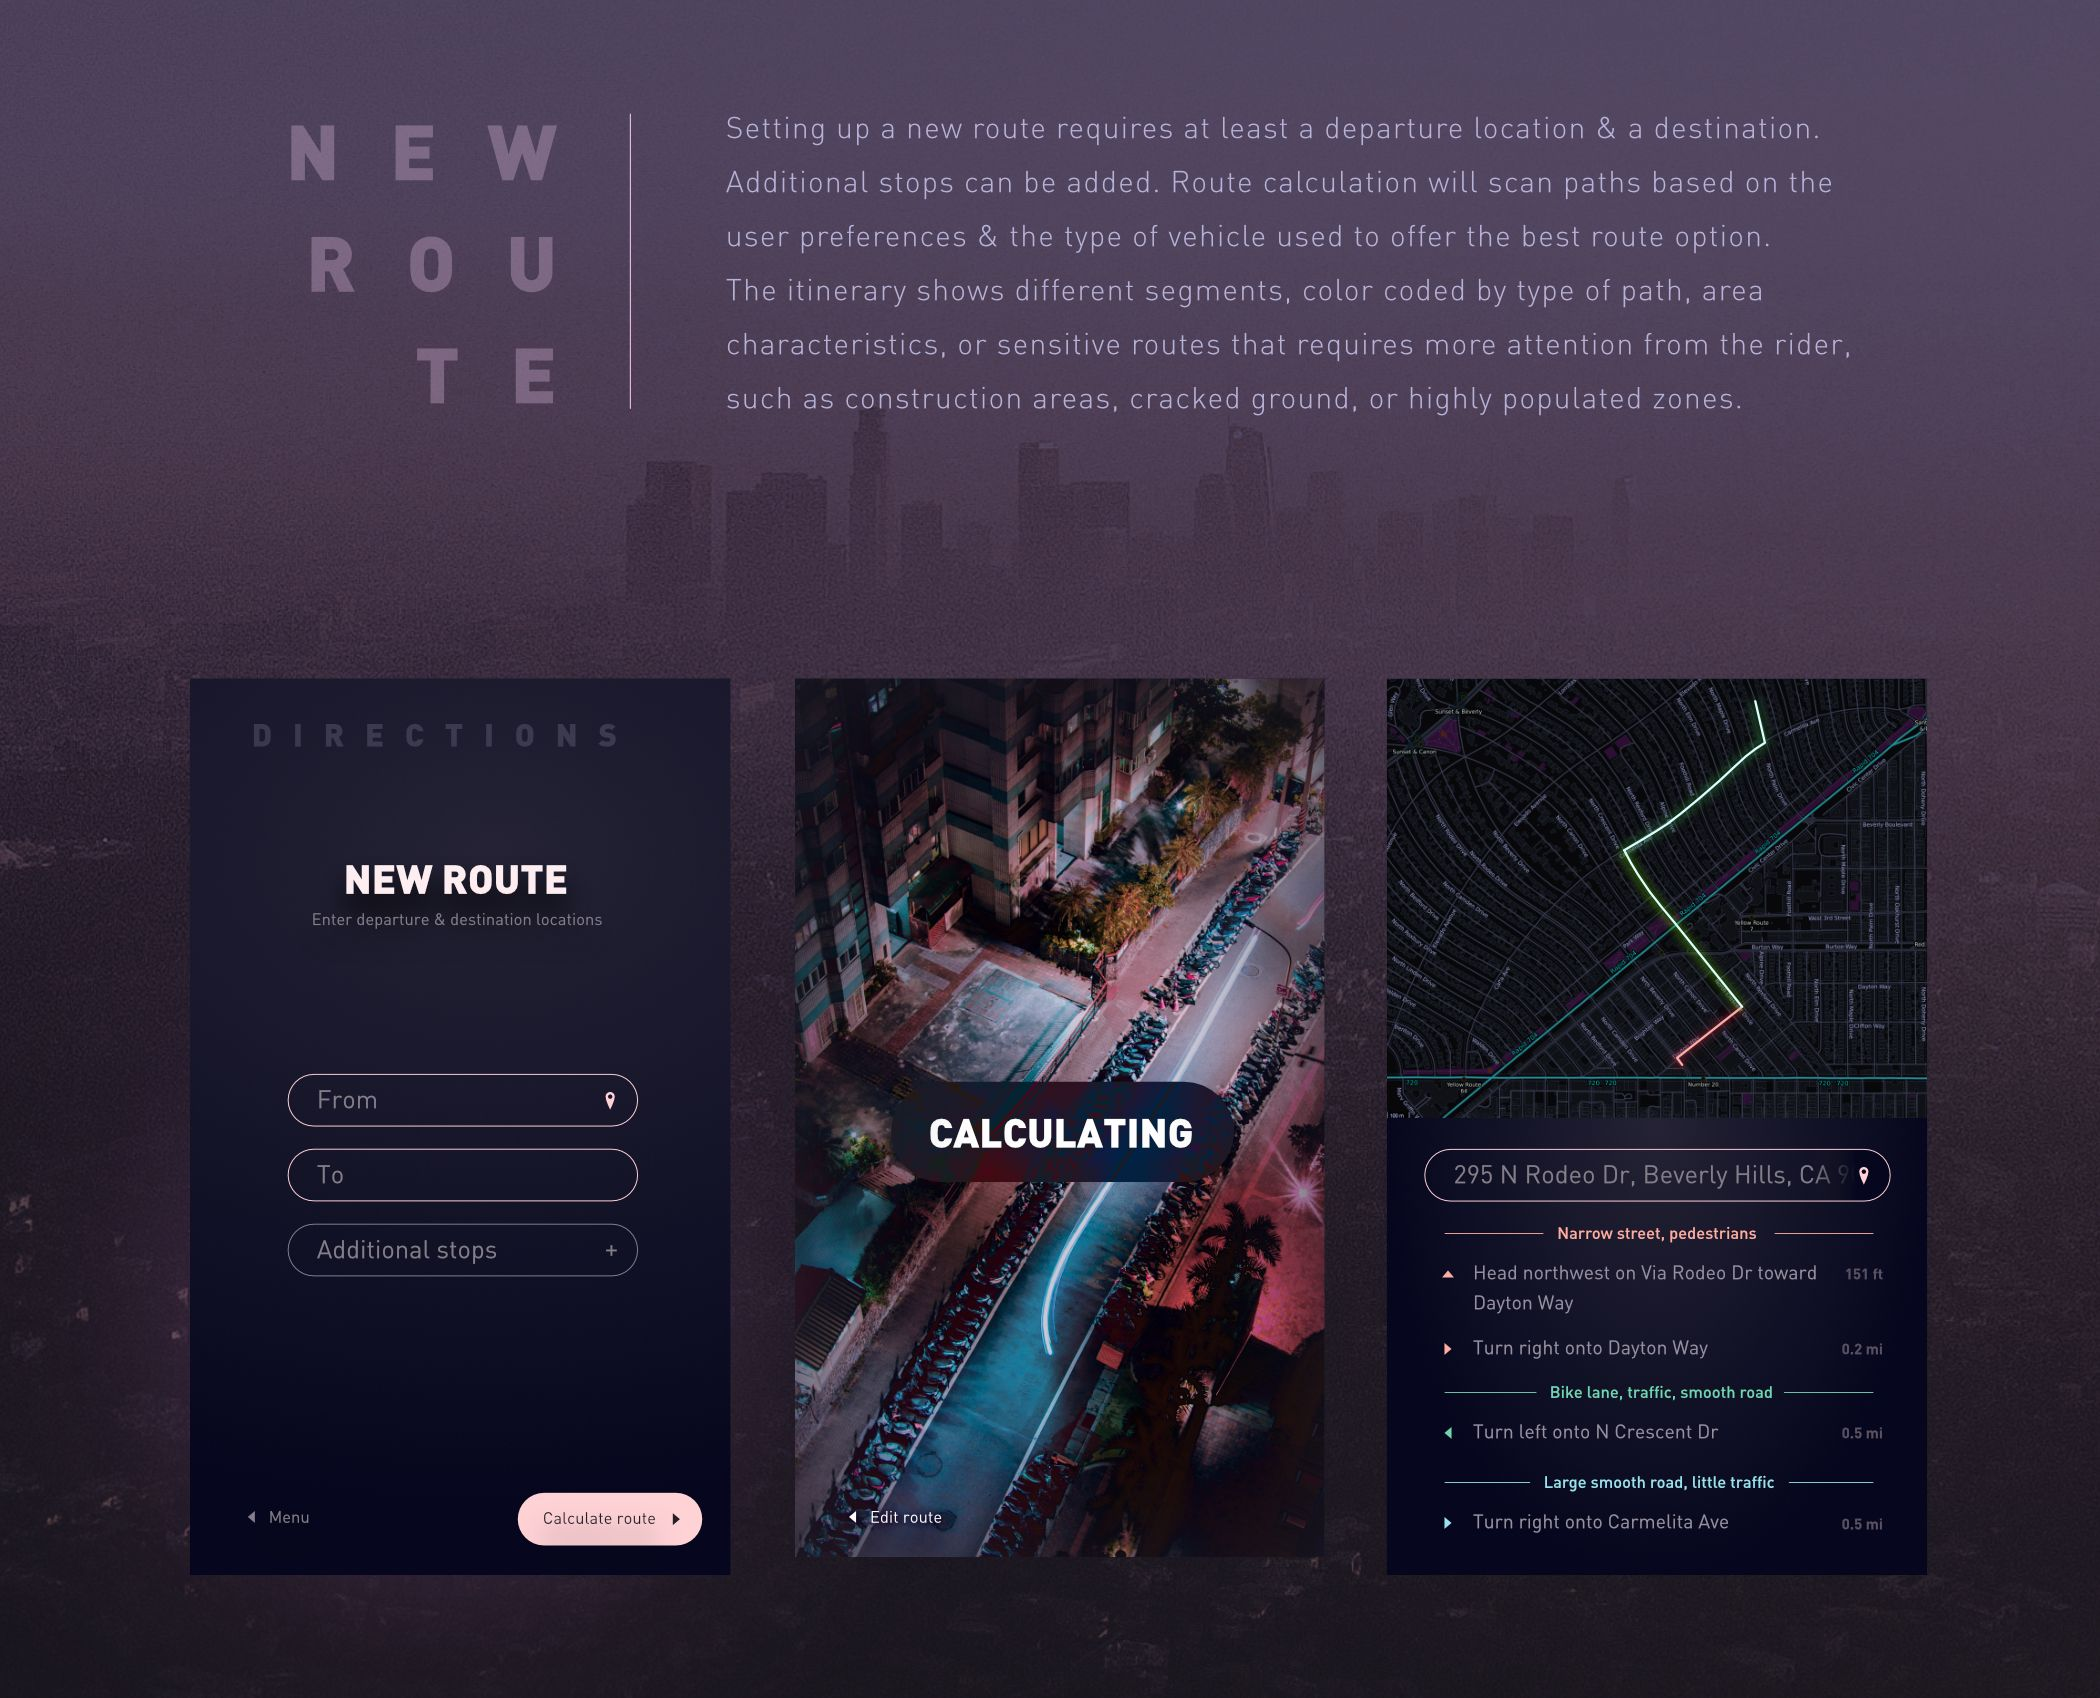 Ride Mapper is a concept app enabling users to get a custom route adapted to their vehicle requirements and preferences. This is a collaborative concept by Meg Wehrlen, facilitating the use of electric skateboards, scooters, on wheels, rollerblades and other tools, accessories or devices